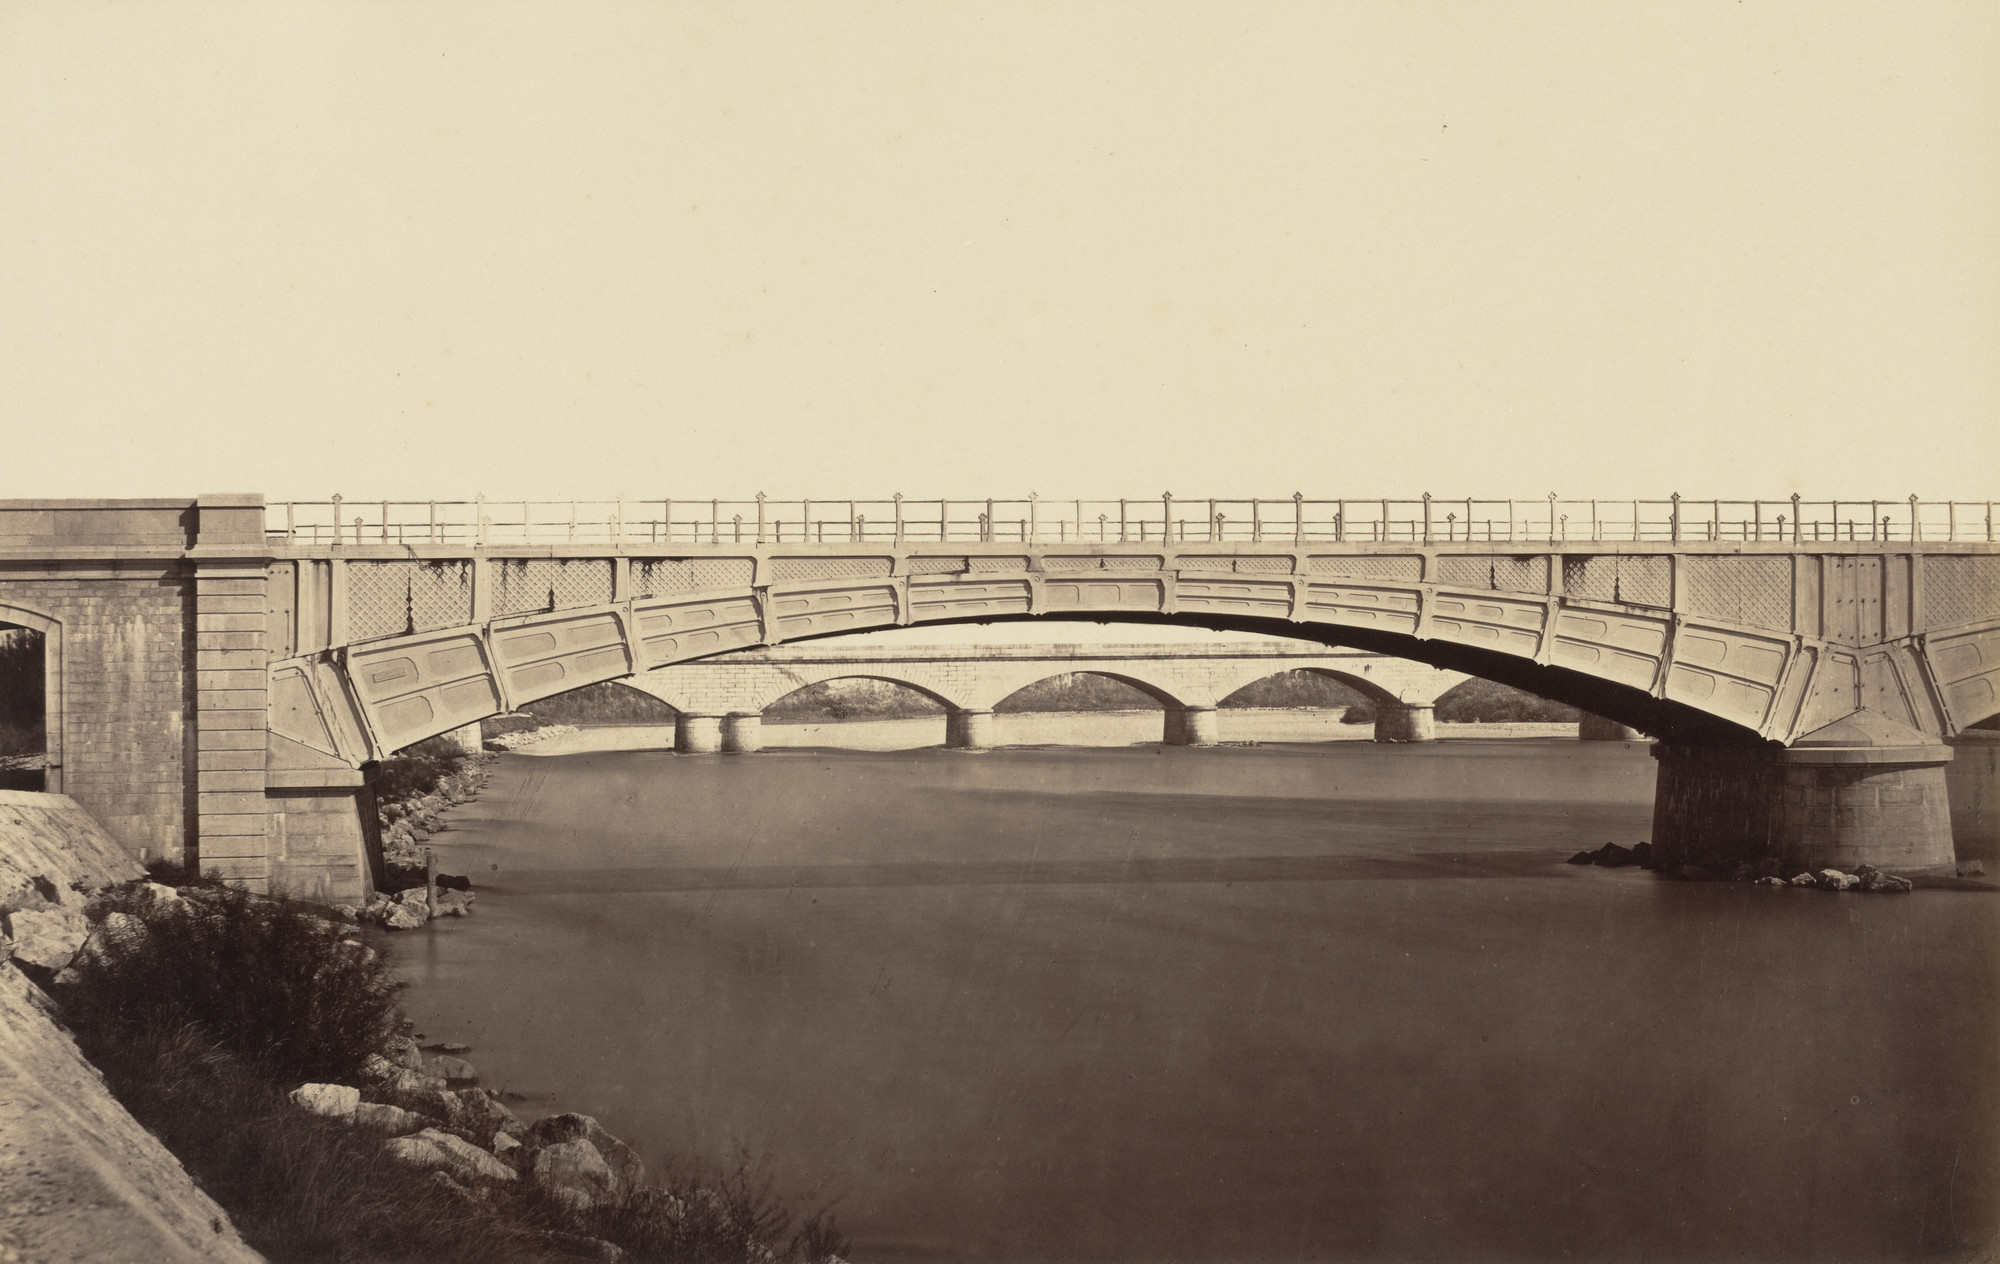 Édouard-Denis Baldus. Viaduct across the Isère River. c. 1857